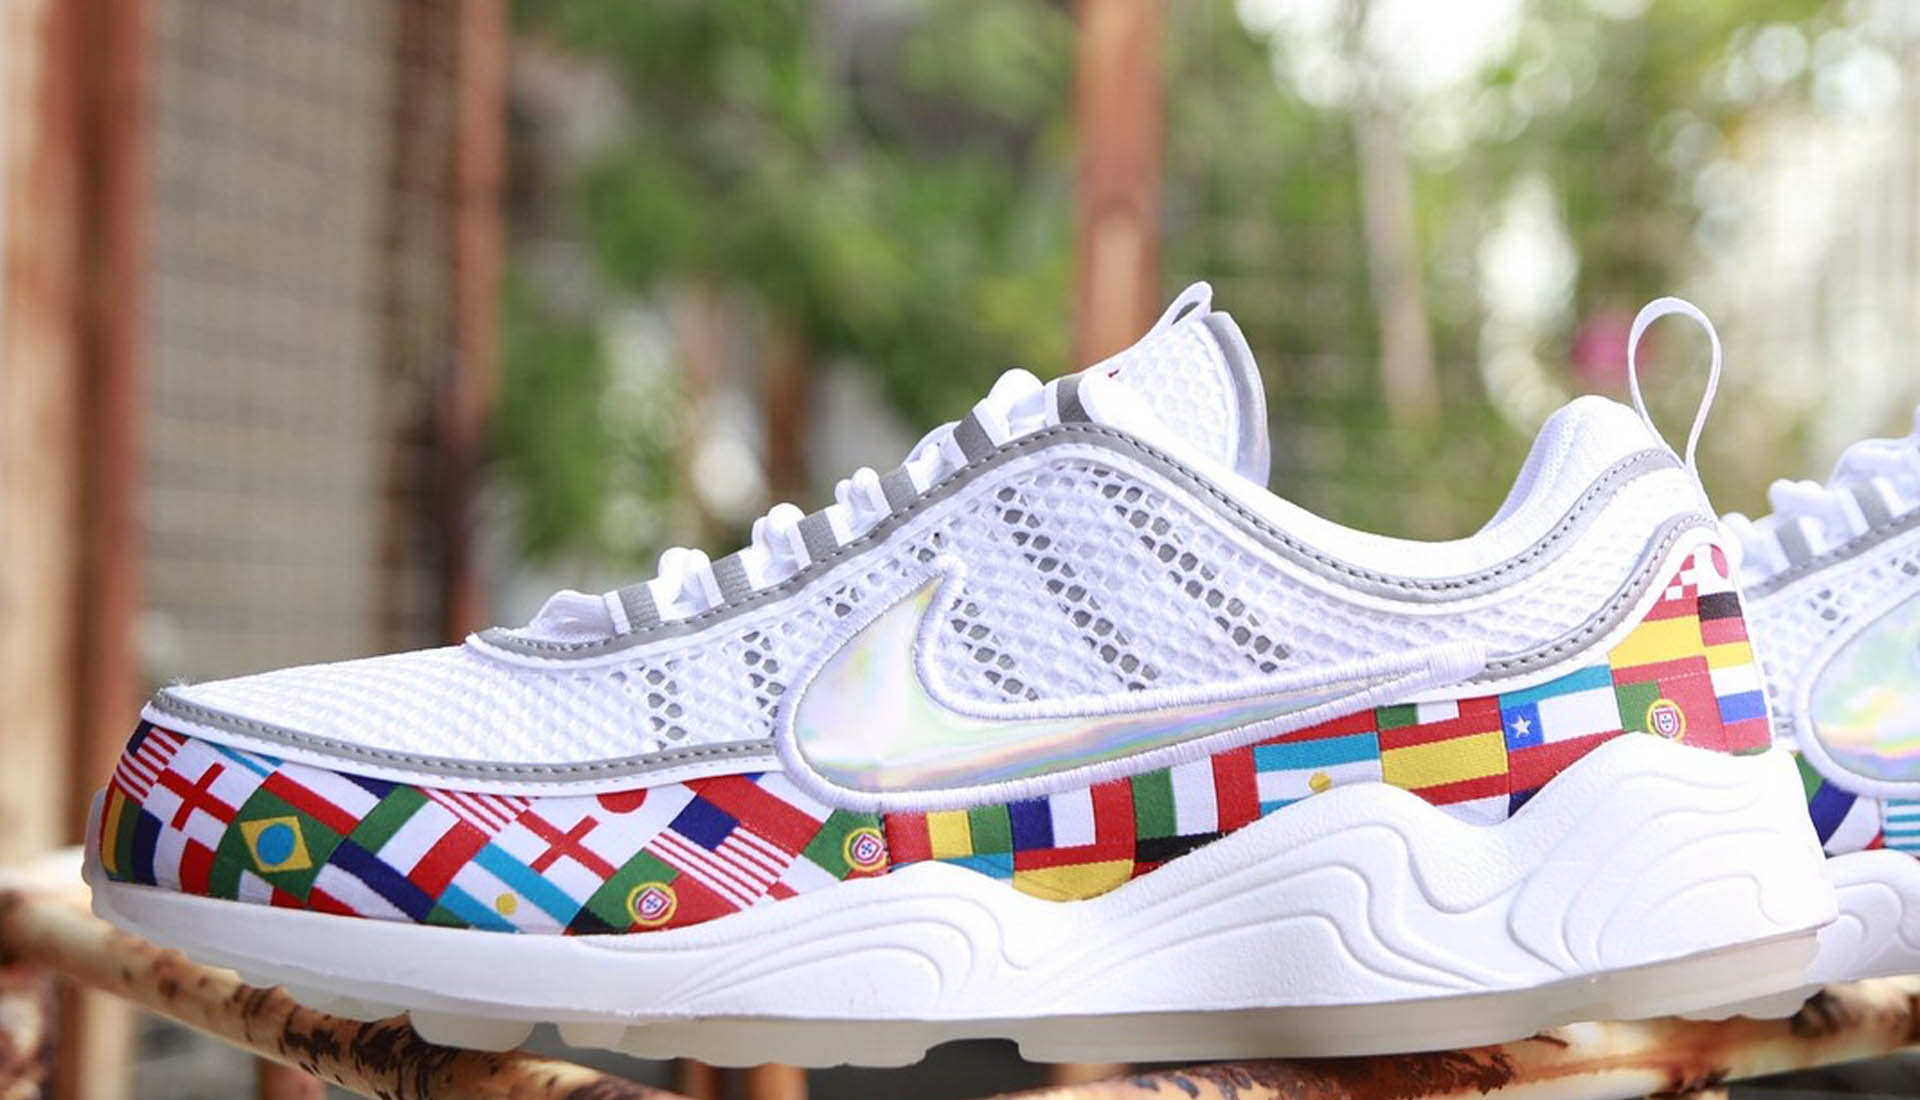 Nike Air Zoom Spiridon Gets Timely